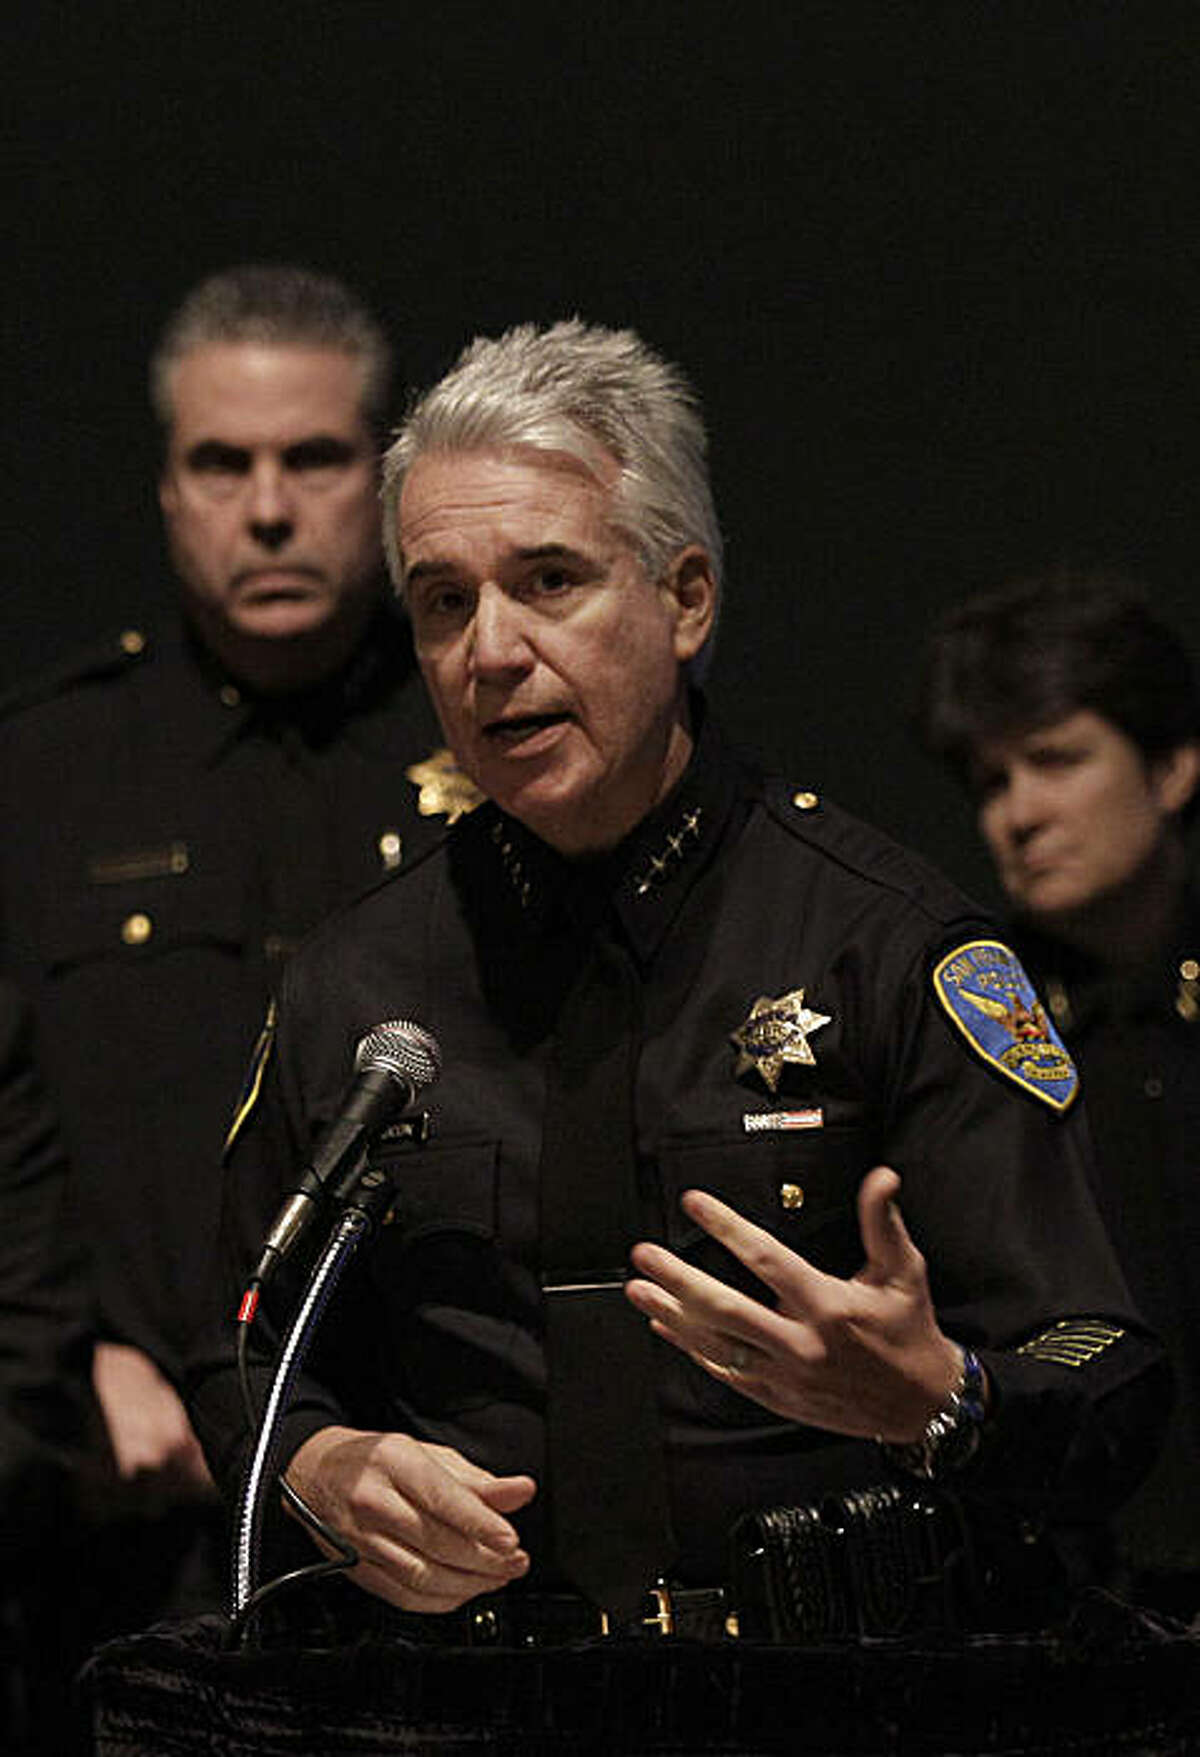 San Francisco Police Chief George Gascón answers questions at a news conference in San Francisco, Wednesday, Jan. 5, 2011.